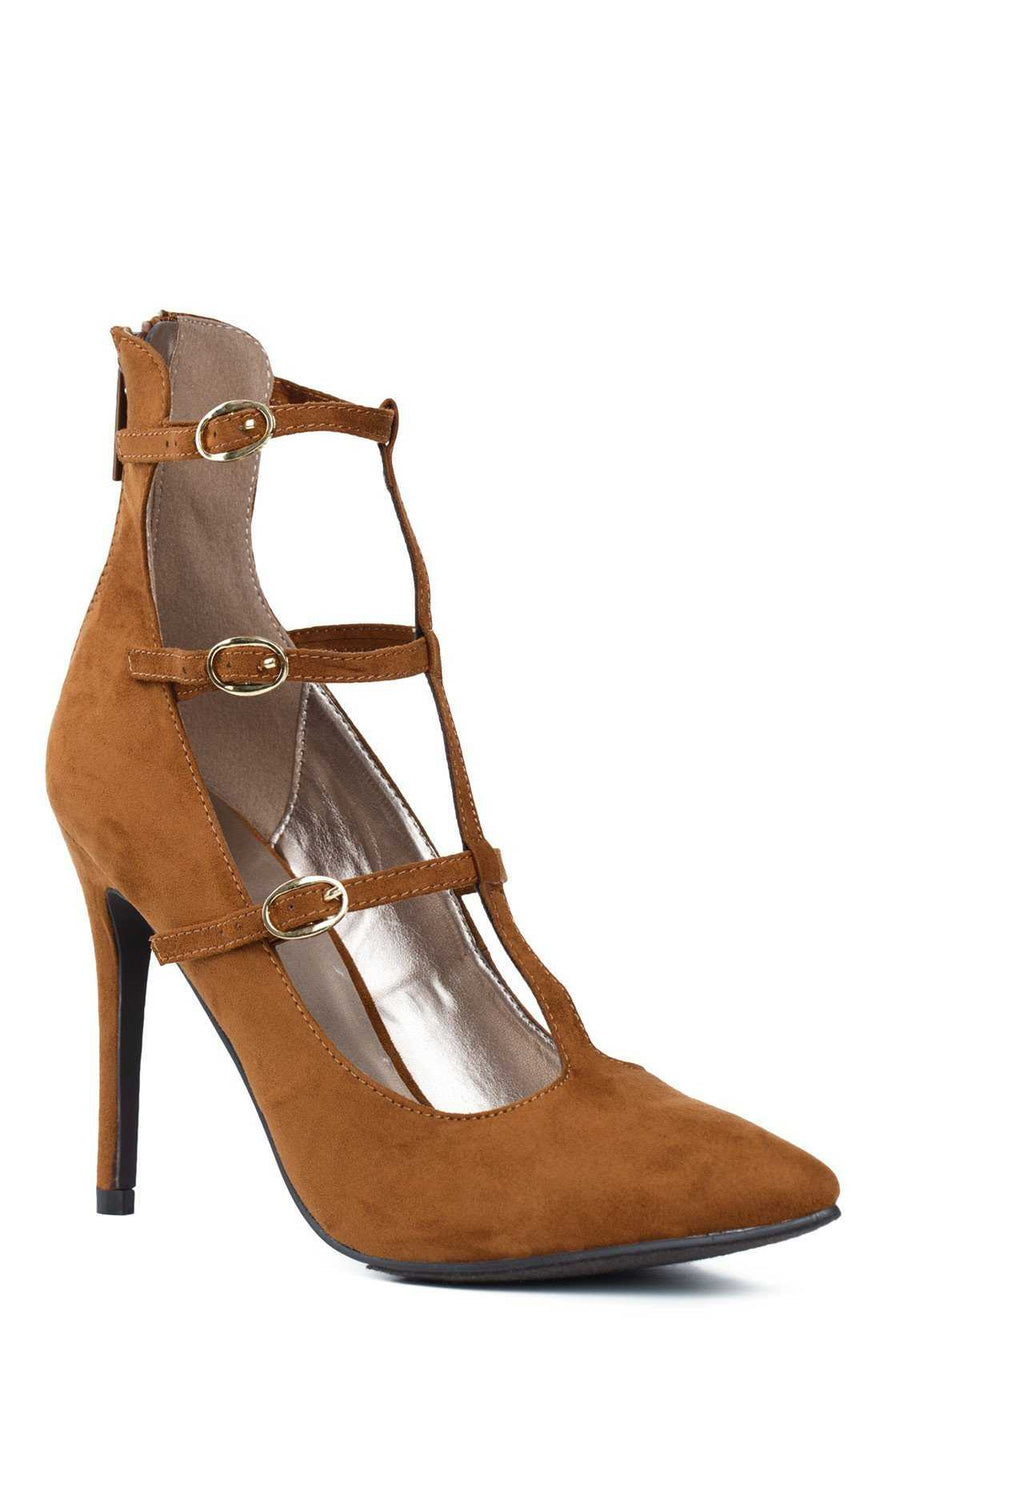 Shoes - Viola Heels - Tan